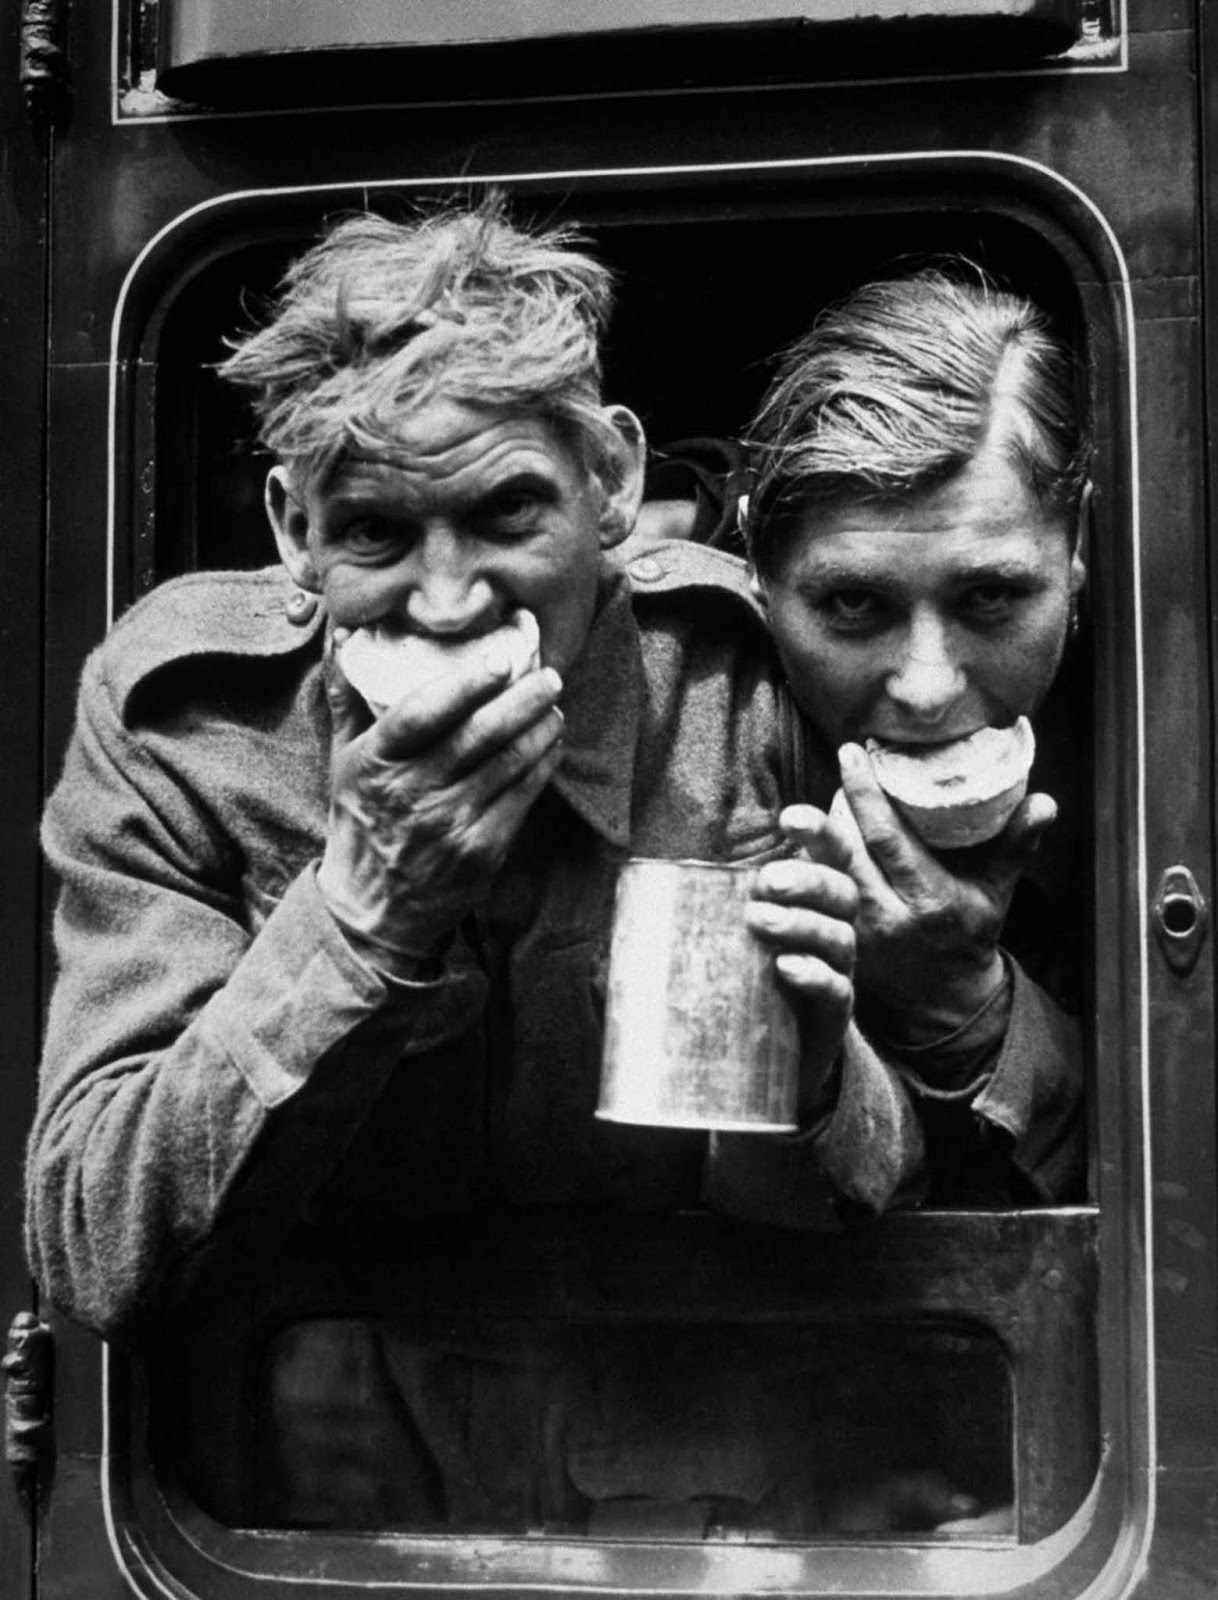 Allied soldiers enjoy food and drink upon returning to Britain.